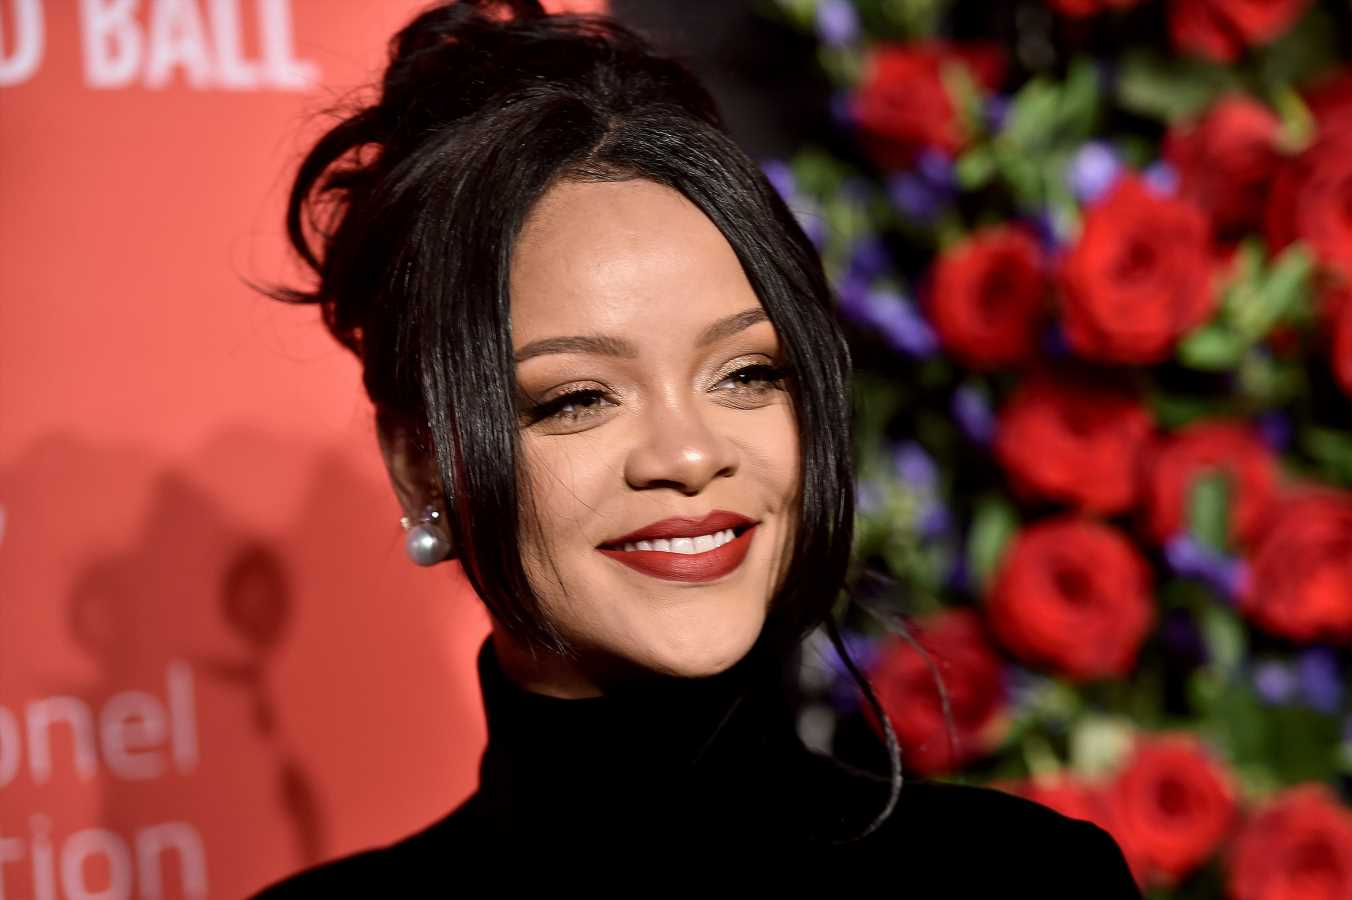 Rihanna Criticized for Texting During 'Slave Play' on Broadway as Playwright Defends Her